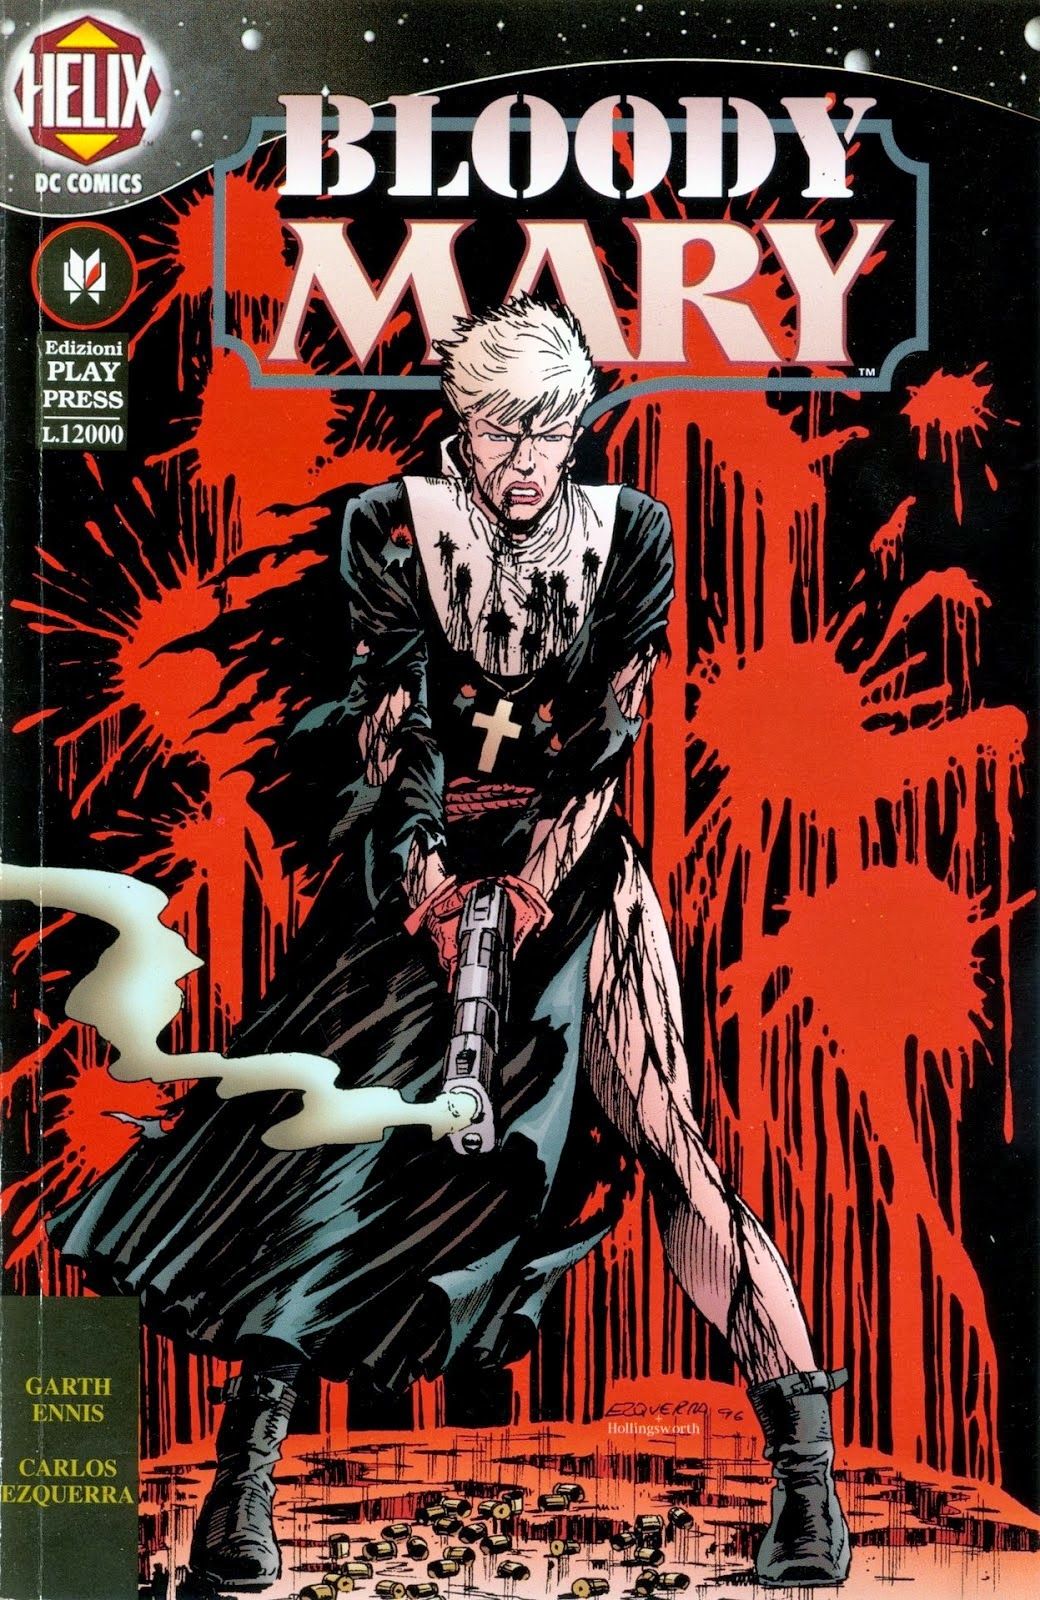 bloody-mary-garth-ennis